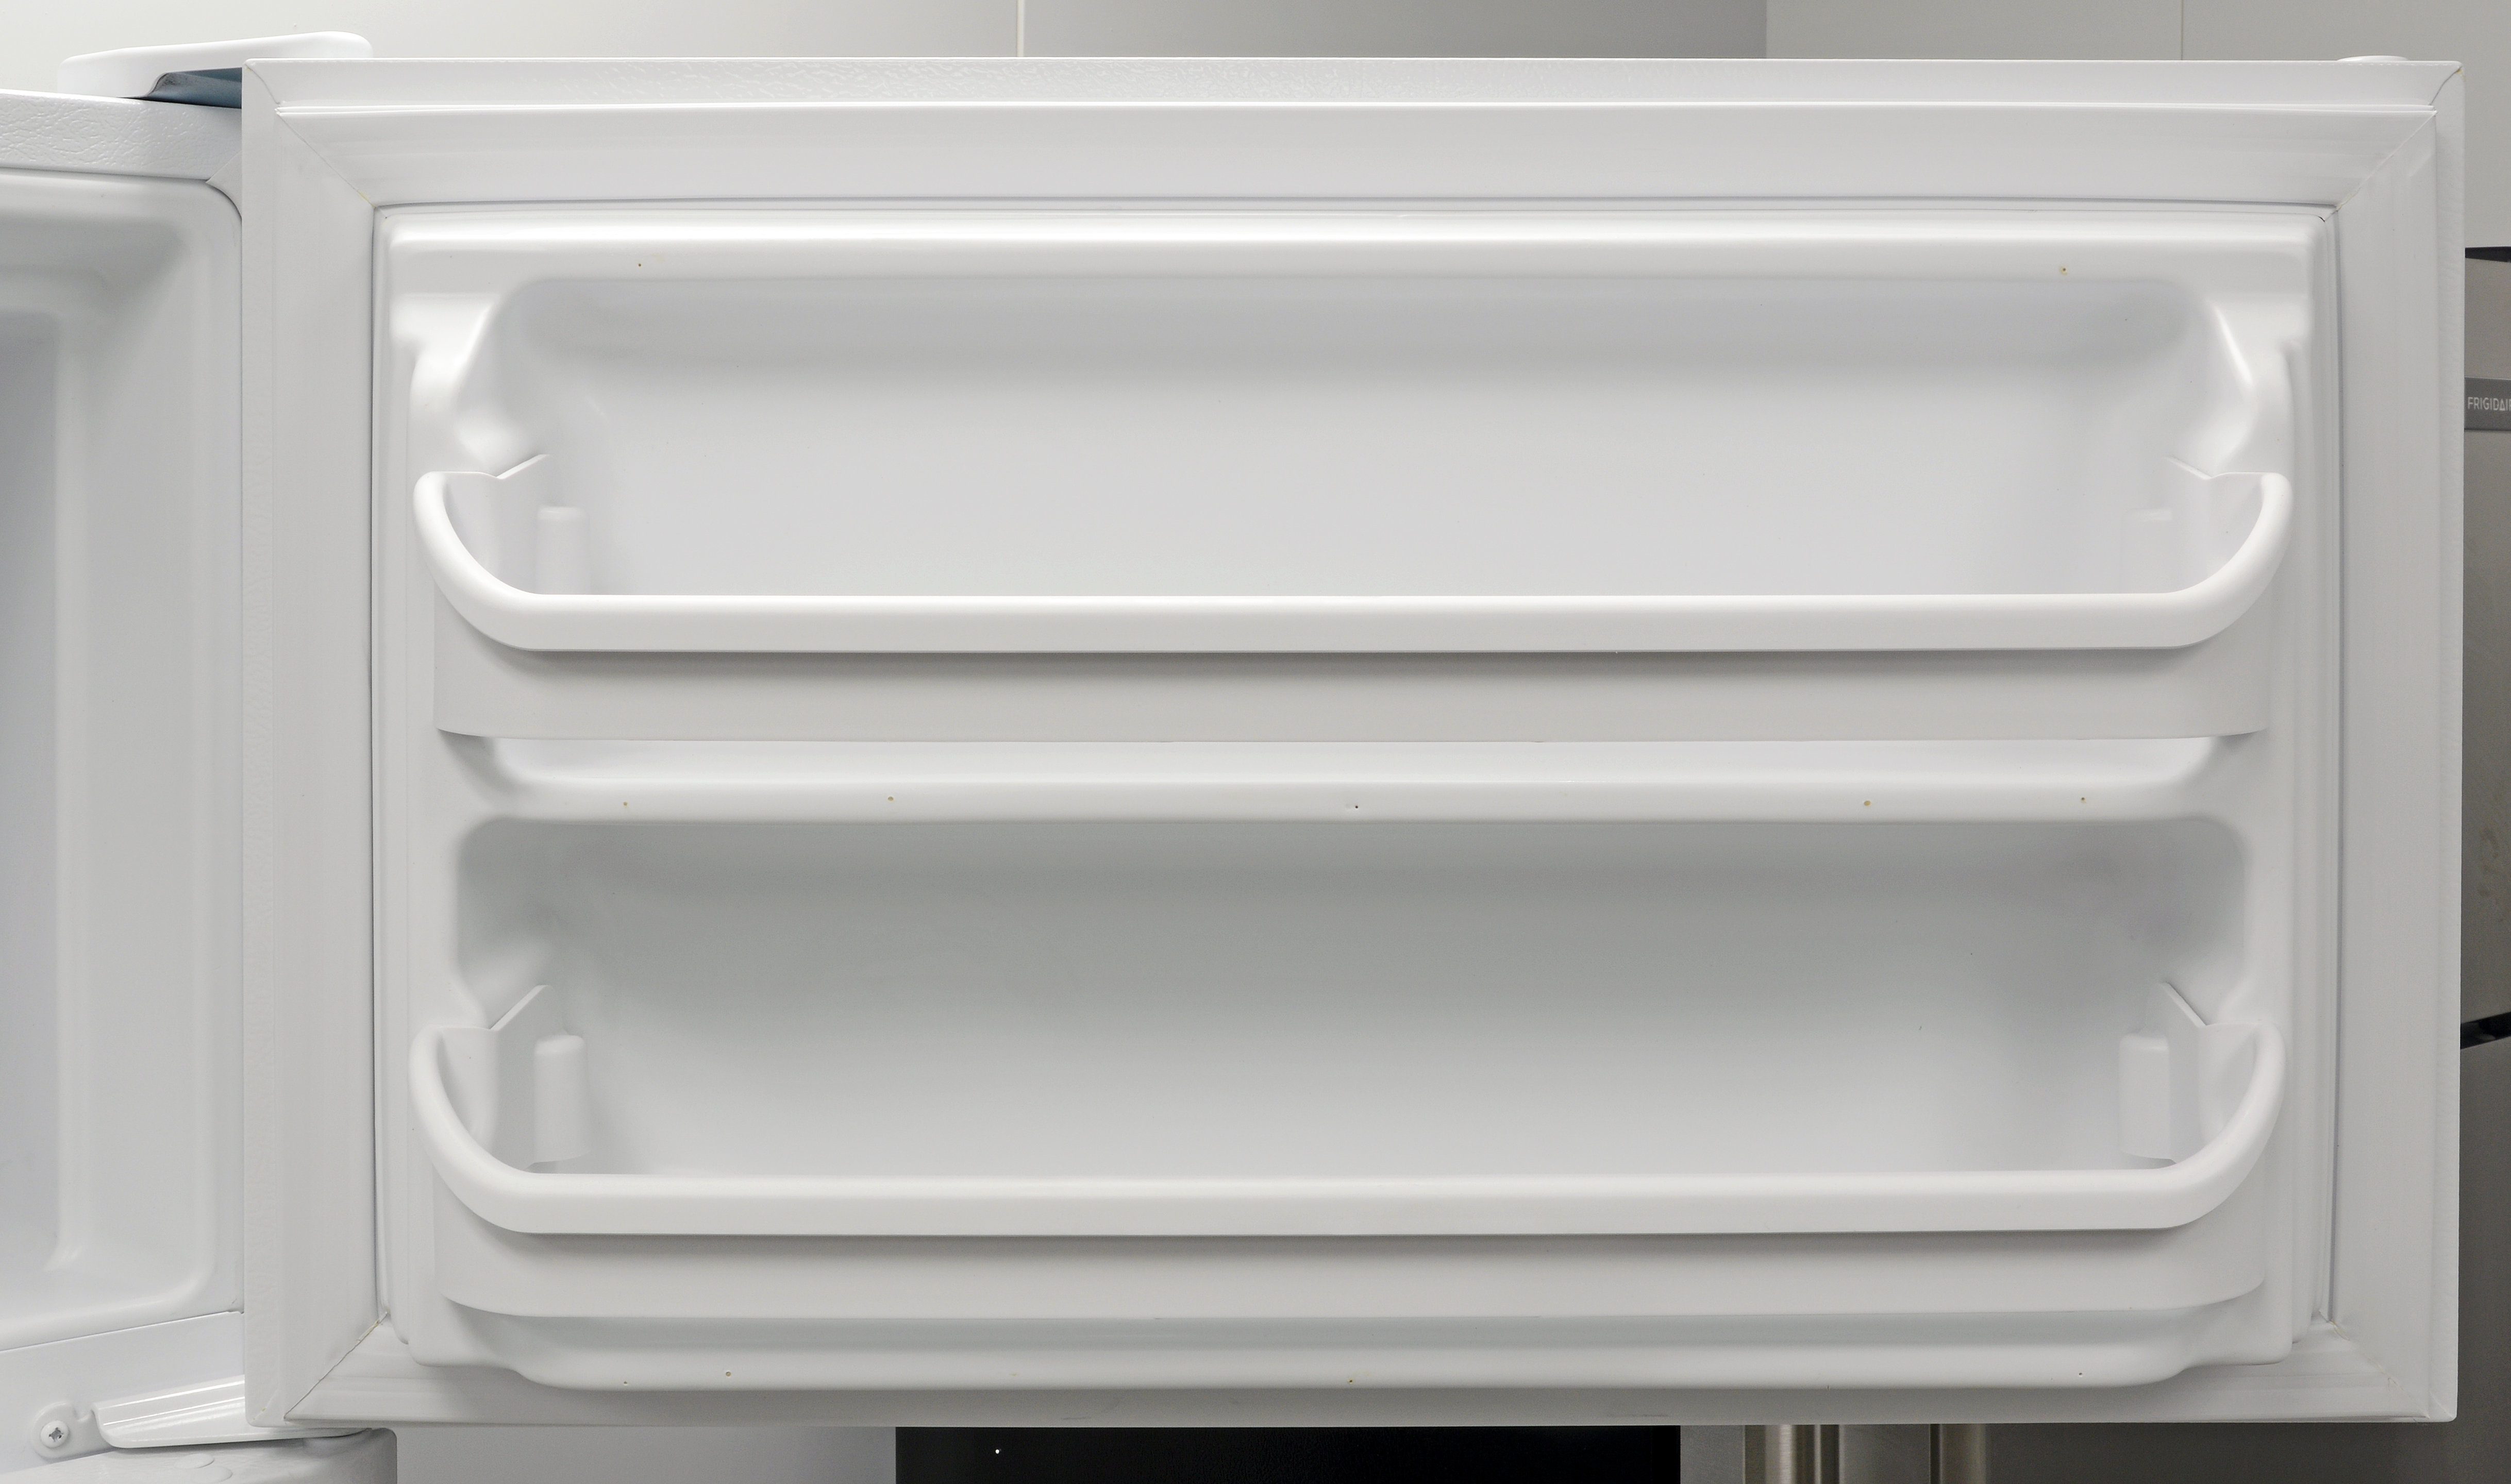 A pair of door shelves provides some extra storage for the Frigidaire FFTR1814QW's freezer.